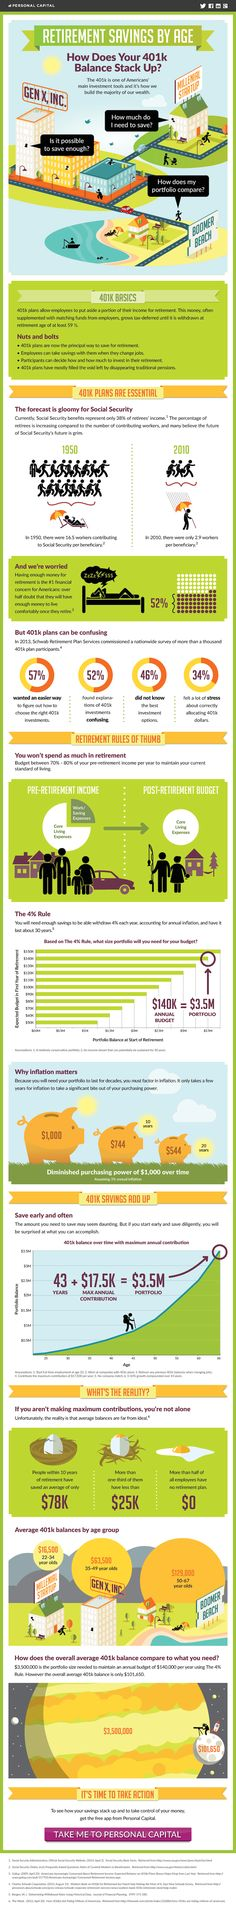 Curious to know how much you need to save for retirement? Wondering how much the average 401k balance is? Will $1 million last long enough in retirement? Find out these answers and more by taking a look at this infograph we put together to help you visualize the importance of retirement savings.